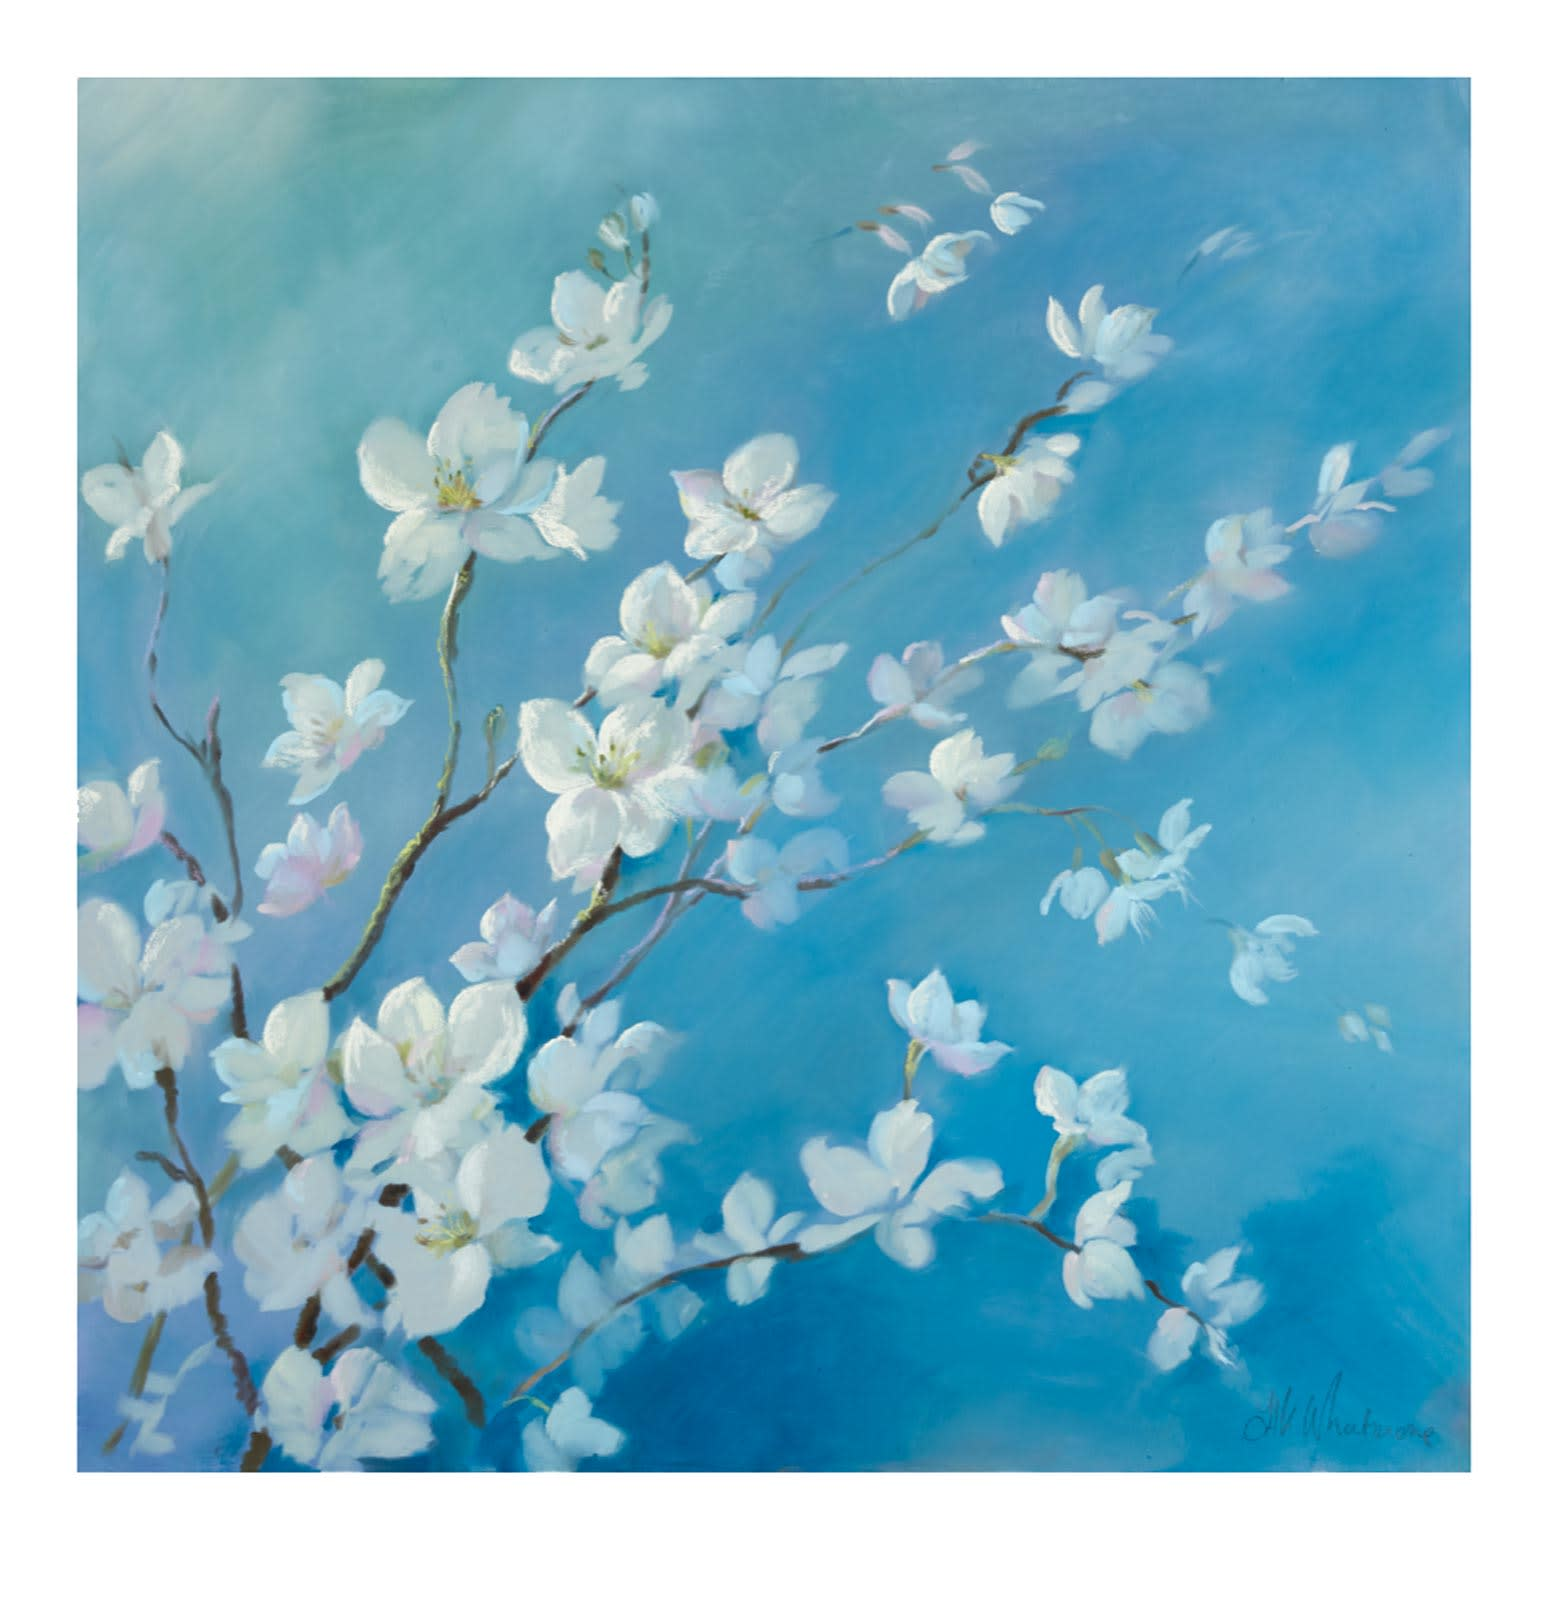 The Beauty Of The Blossom, Nel Whatmore